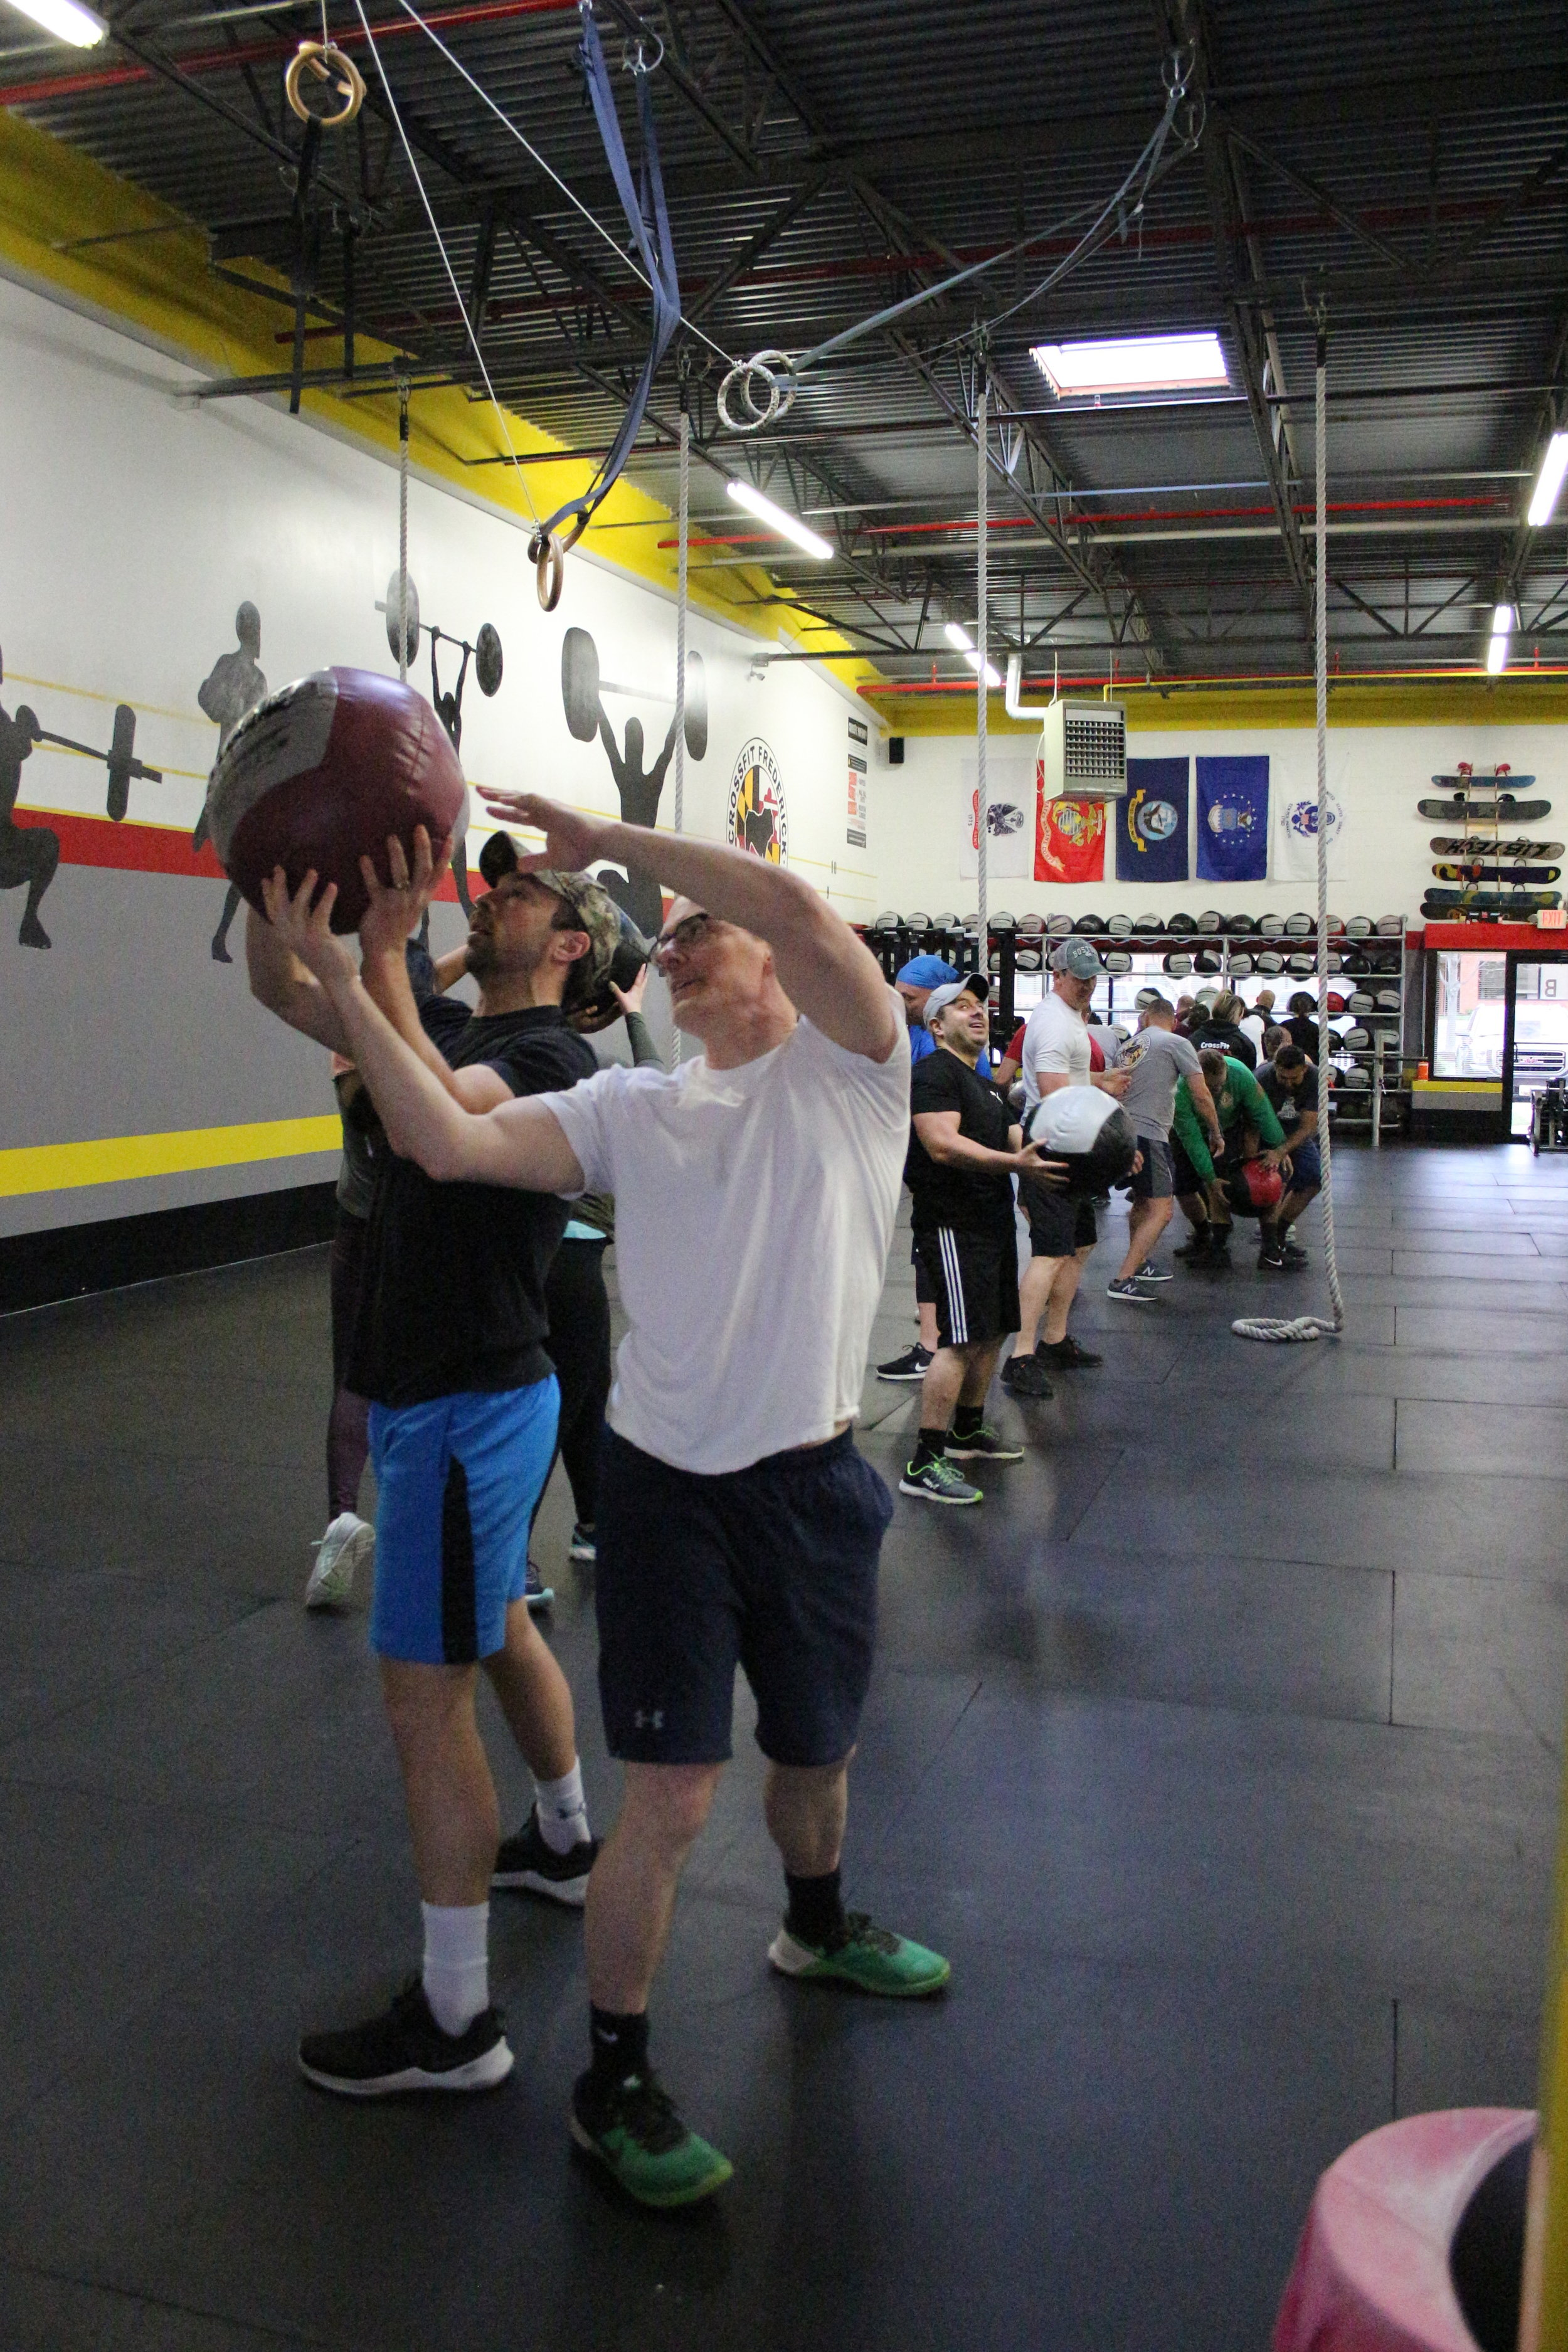 Dylan and Kevin passing off the medicine ball with a low high hand-off during warm-up.